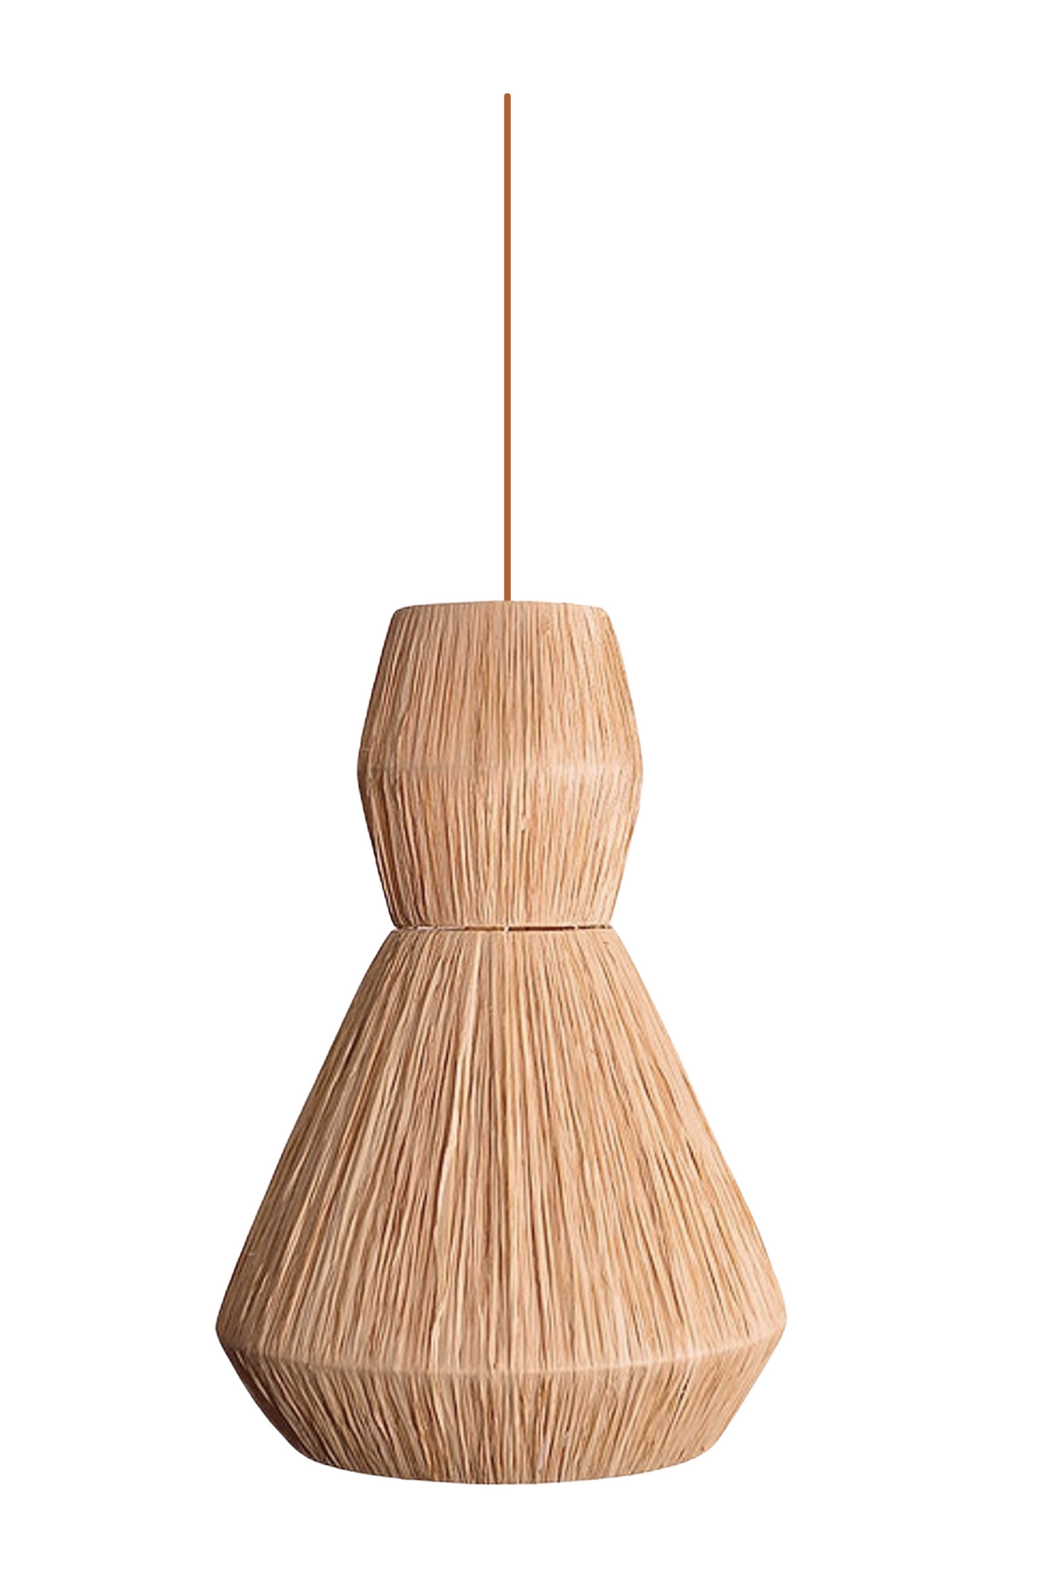 'Riad' Raffia Light Pendant 5